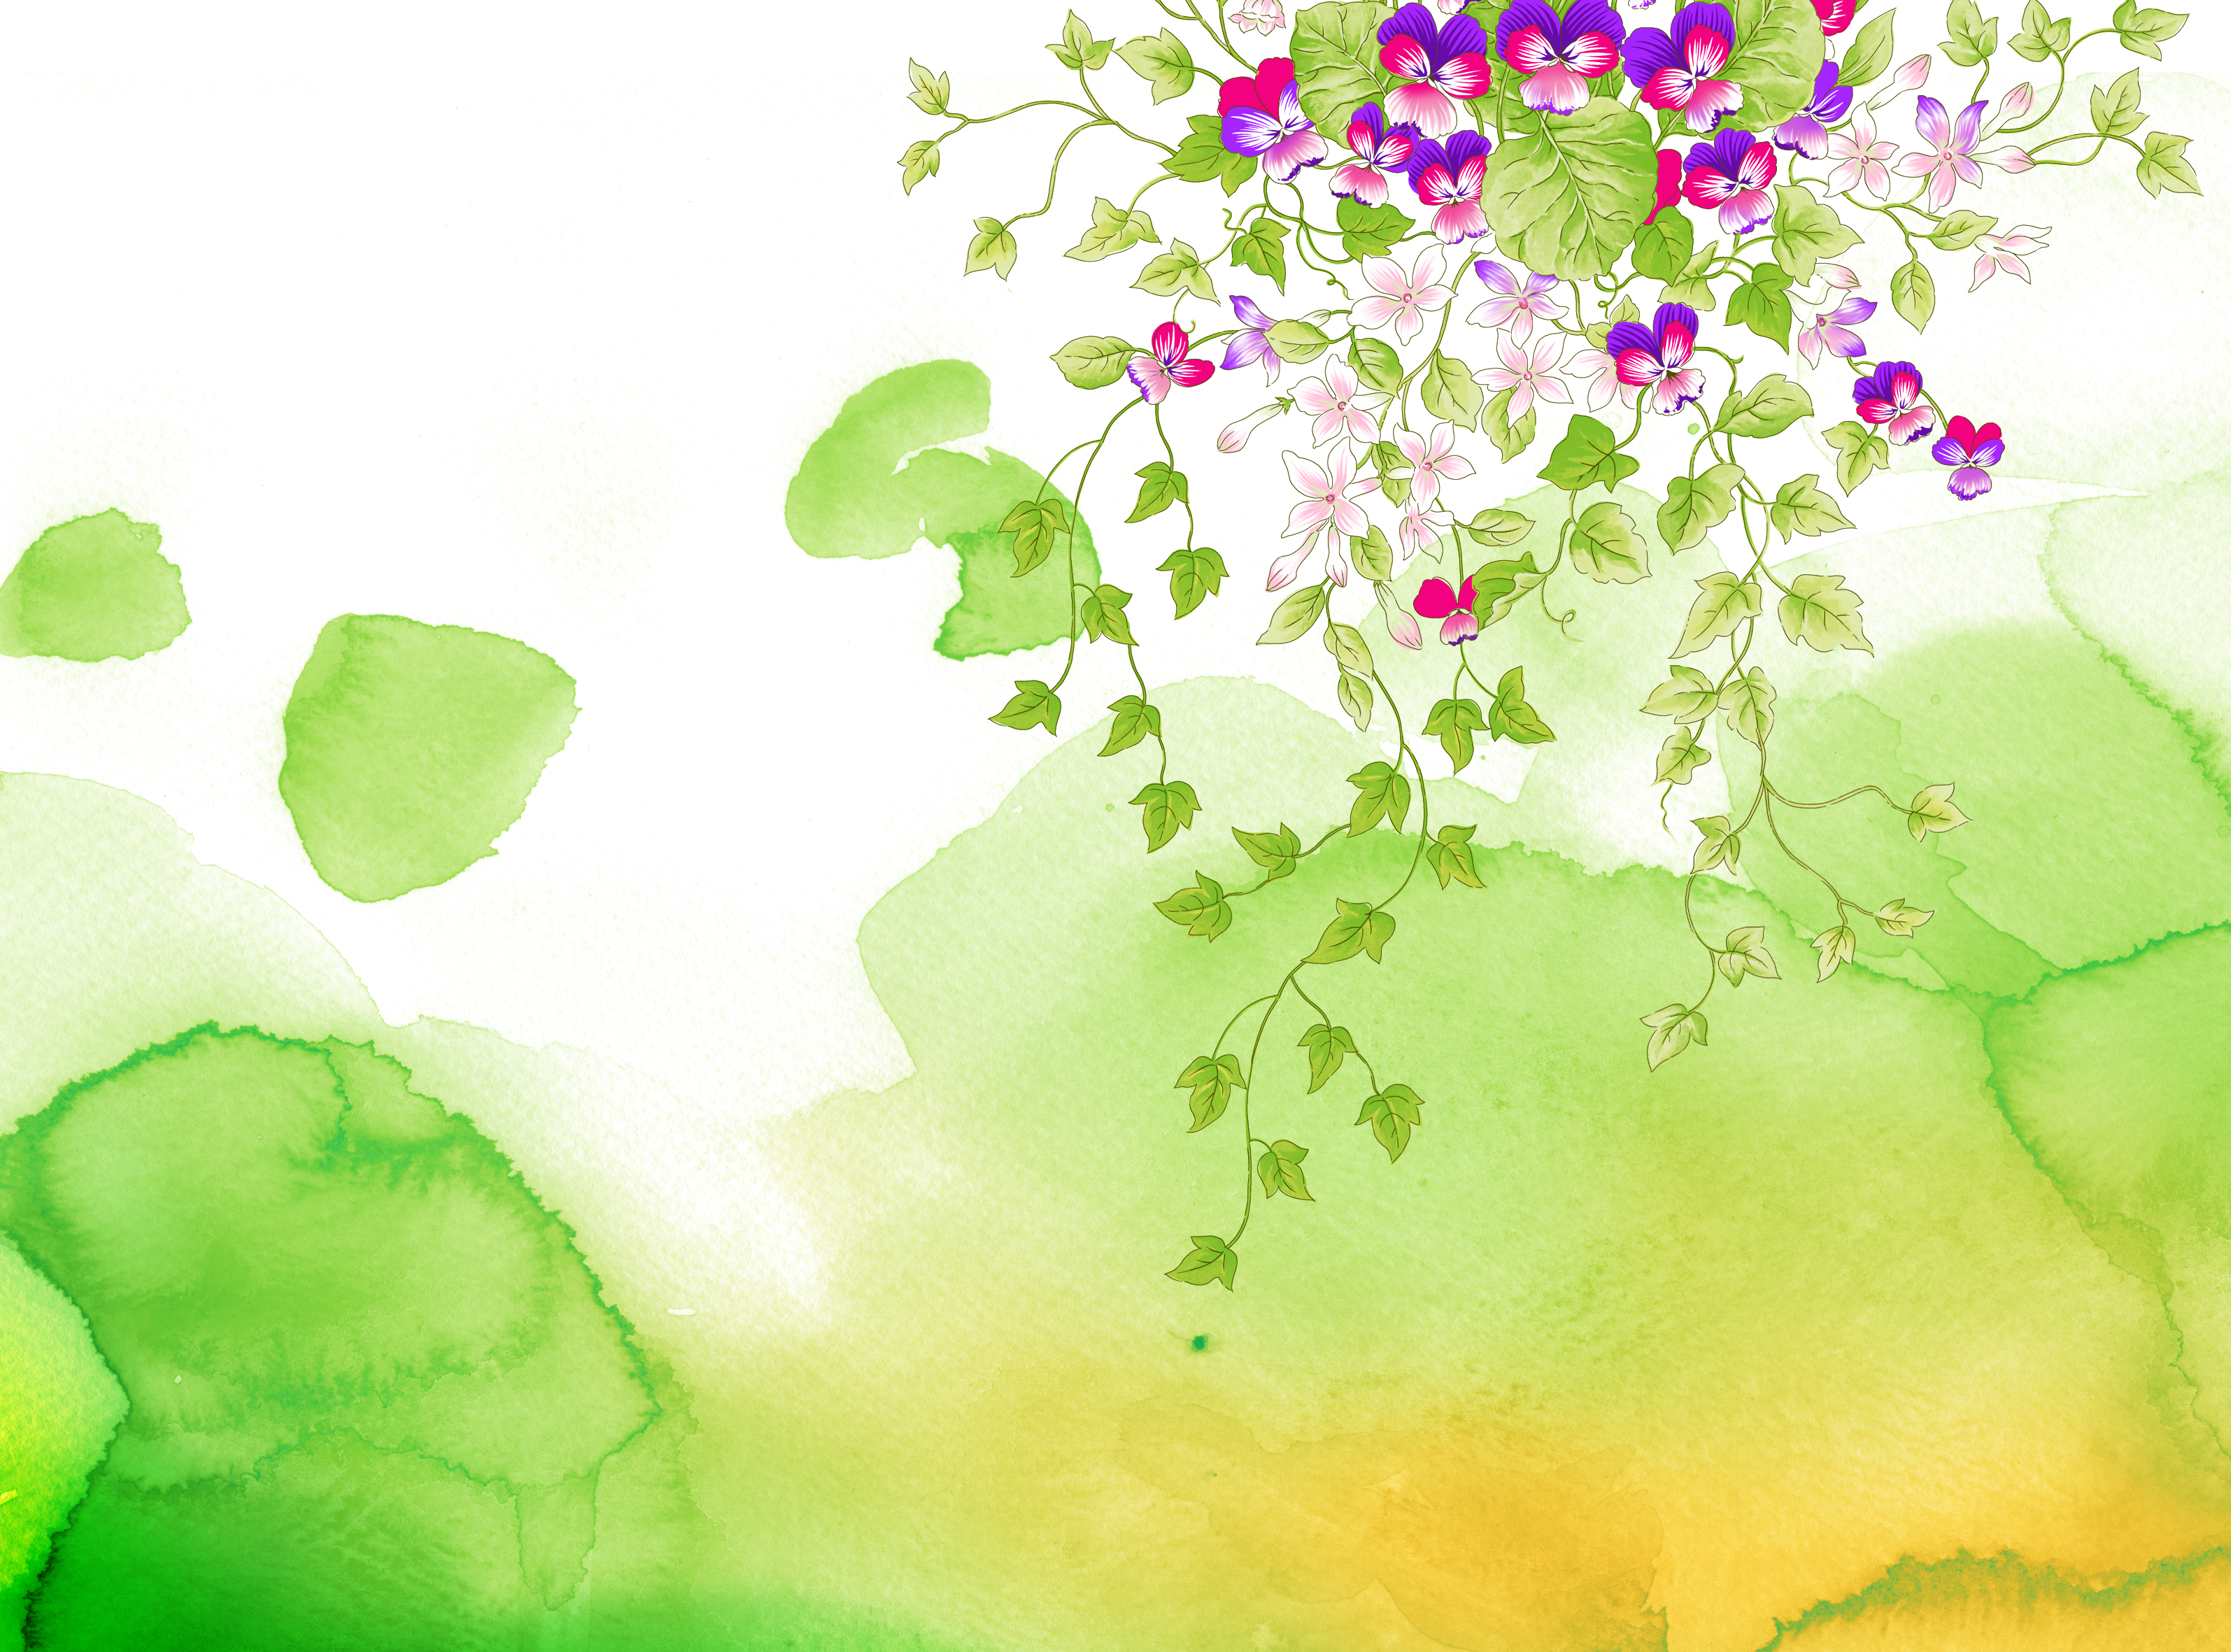 23 Free PSD Nature Backgrounds: Abstract, Watercolor